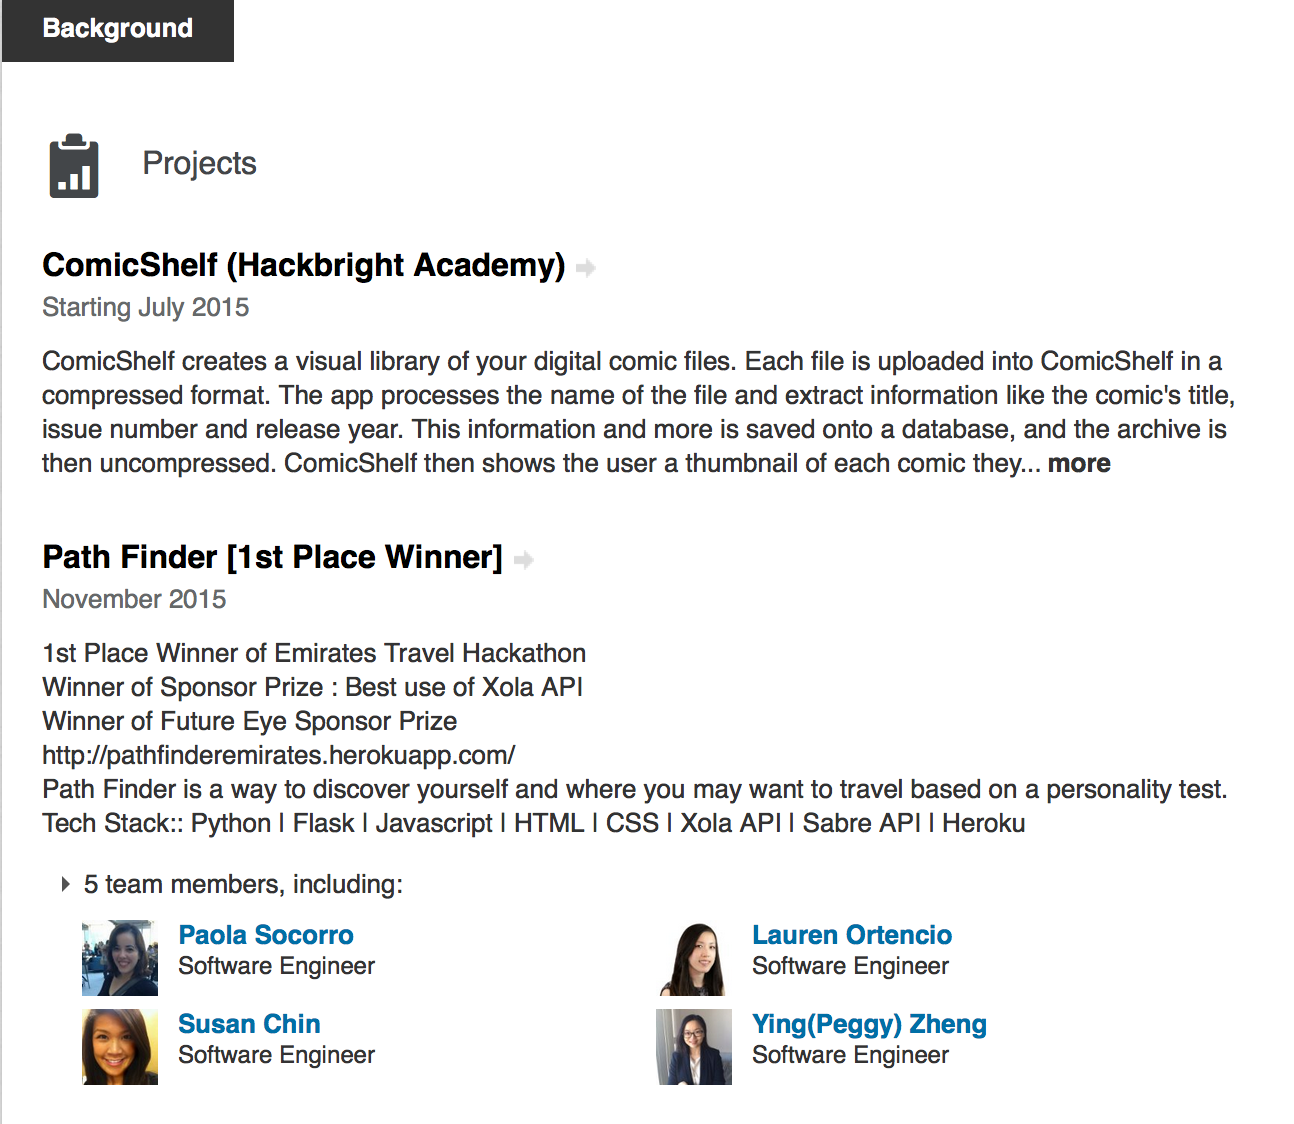 LinkedIn Checklist for Hackbright Job Seekers